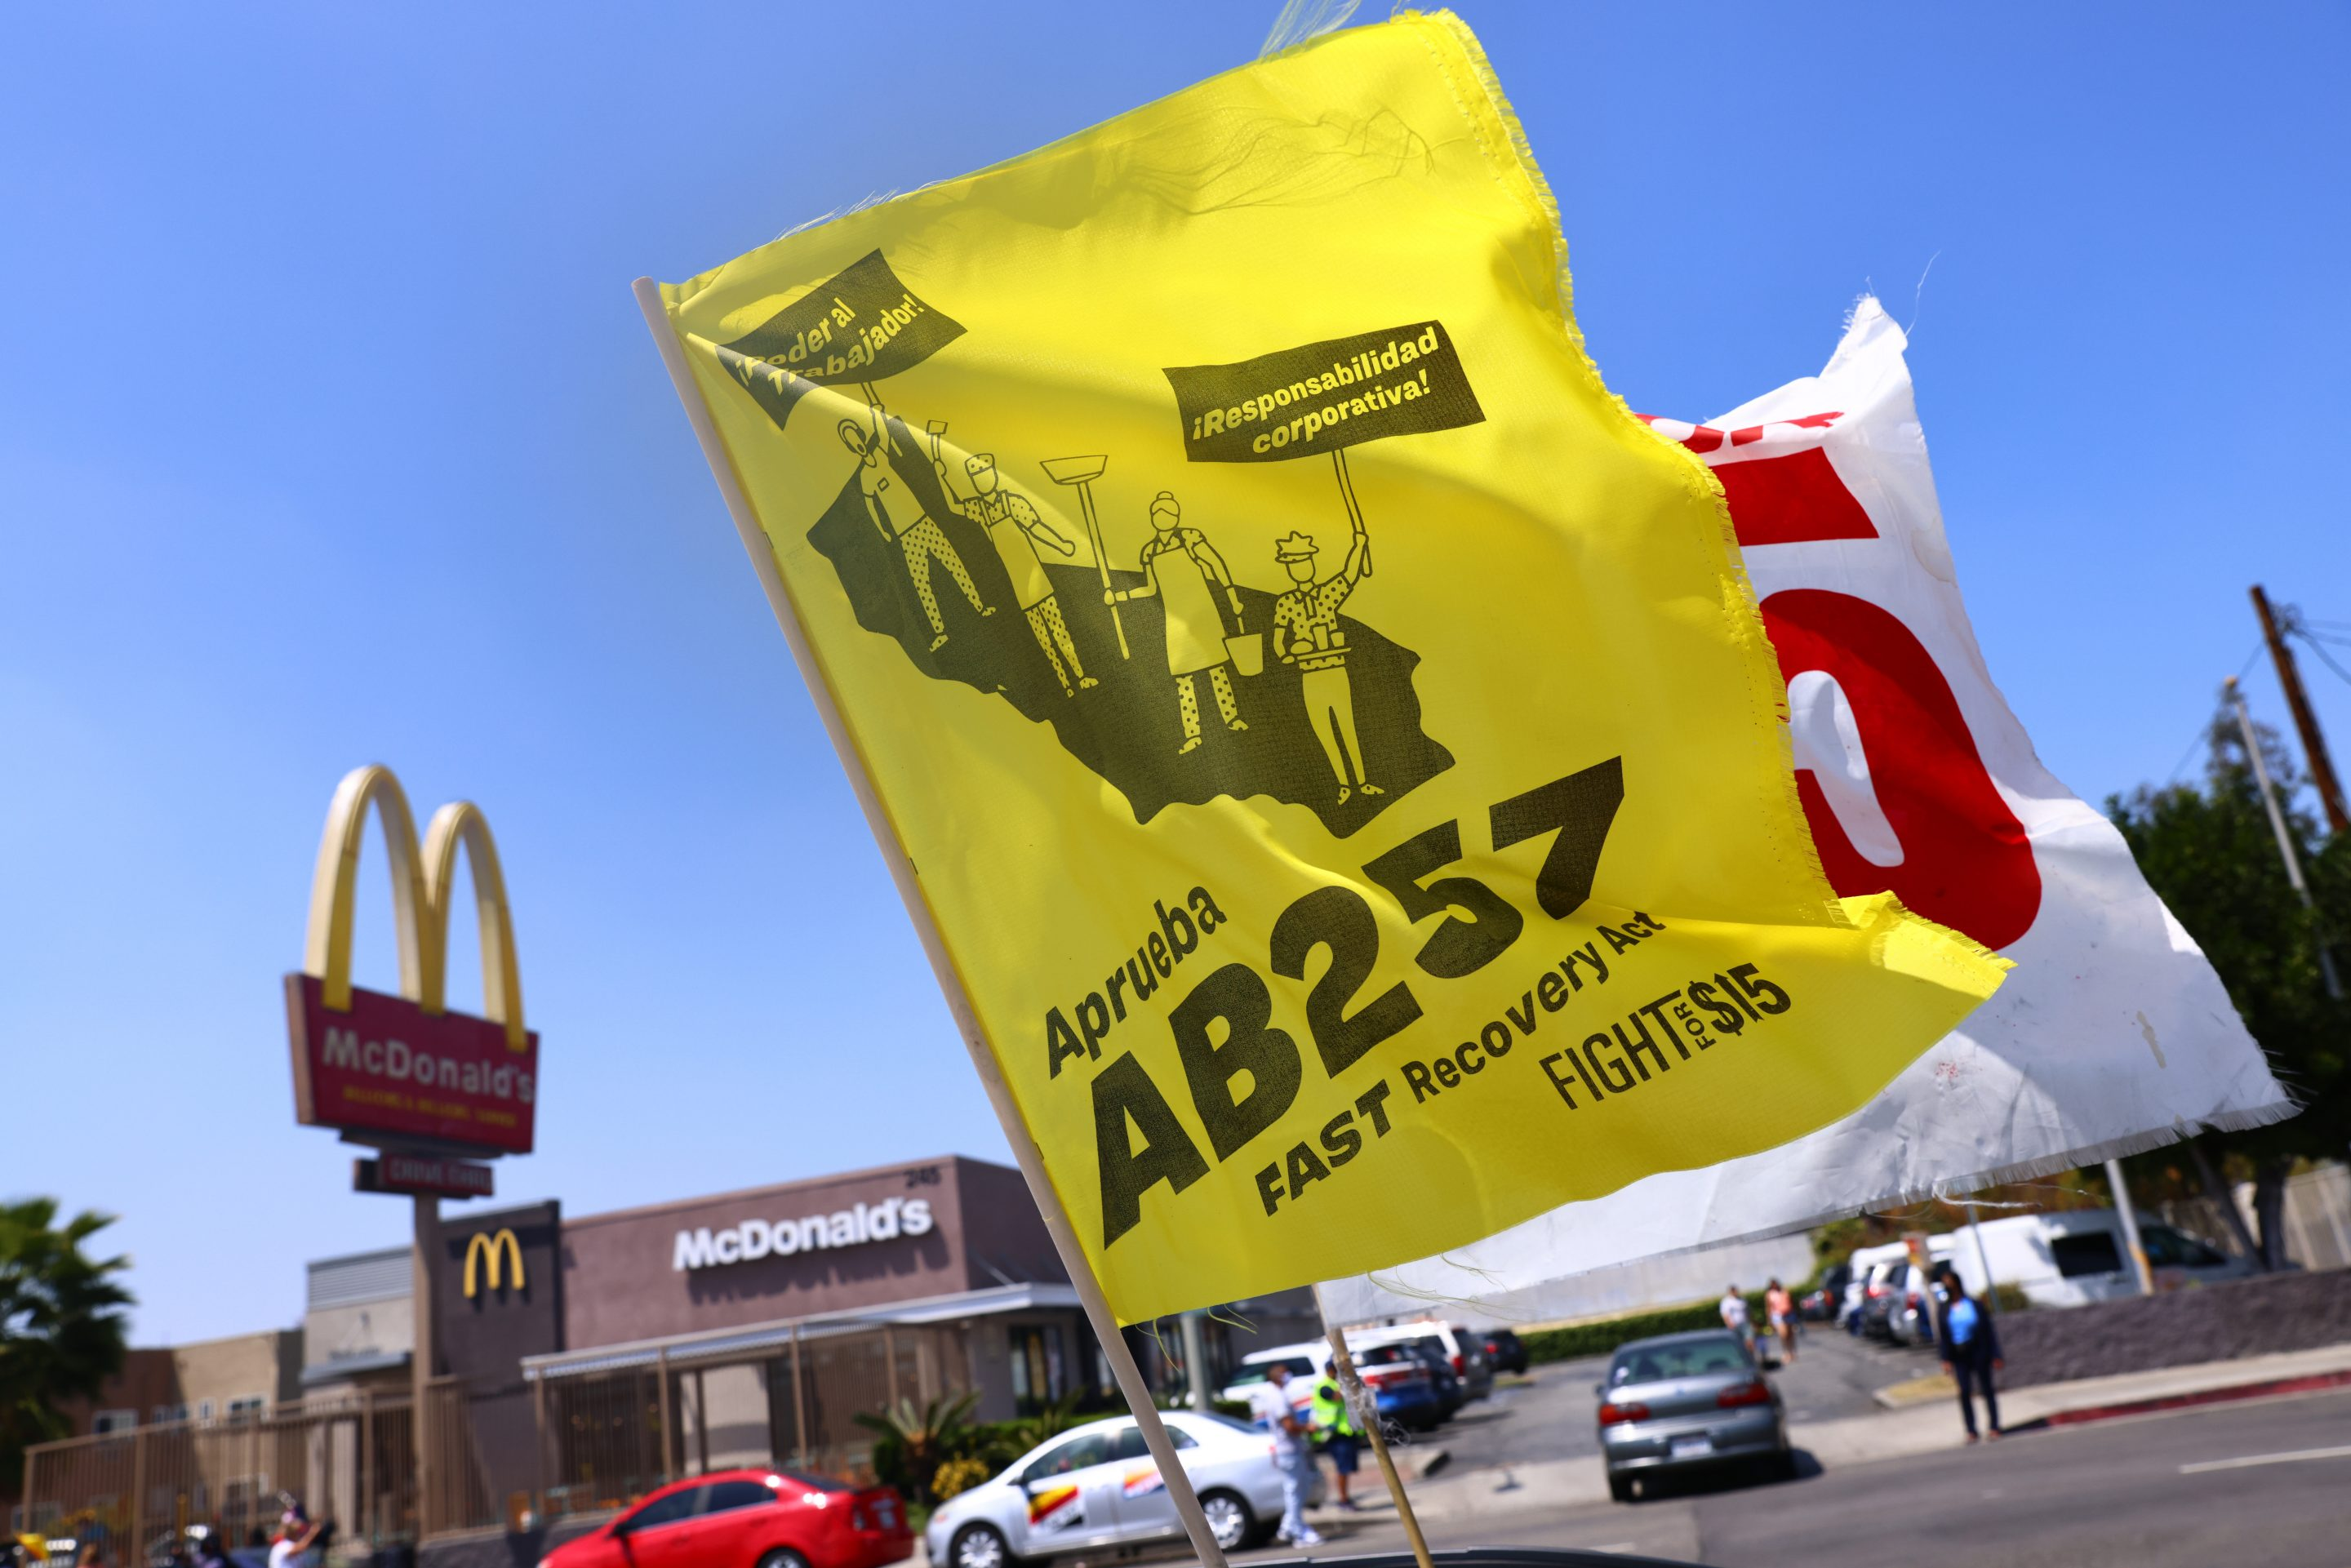 LOS ANGELES, CALIFORNIA - APRIL 16: Flags are flown at a car caravan and rally of fast food workers and supporters for passage of AB 257, a fast-food worker health and safety bill, on April 16, 2021 in the Boyle Heights neighborhood of Los Angeles, California. The rally was held outside of a McDonald's location where a worker lodged public health complaints and a wage theft complaint. Some fast food workers are on strike in Los Angeles County today in support of the bill. (Photo by Mario Tama/Getty Images)